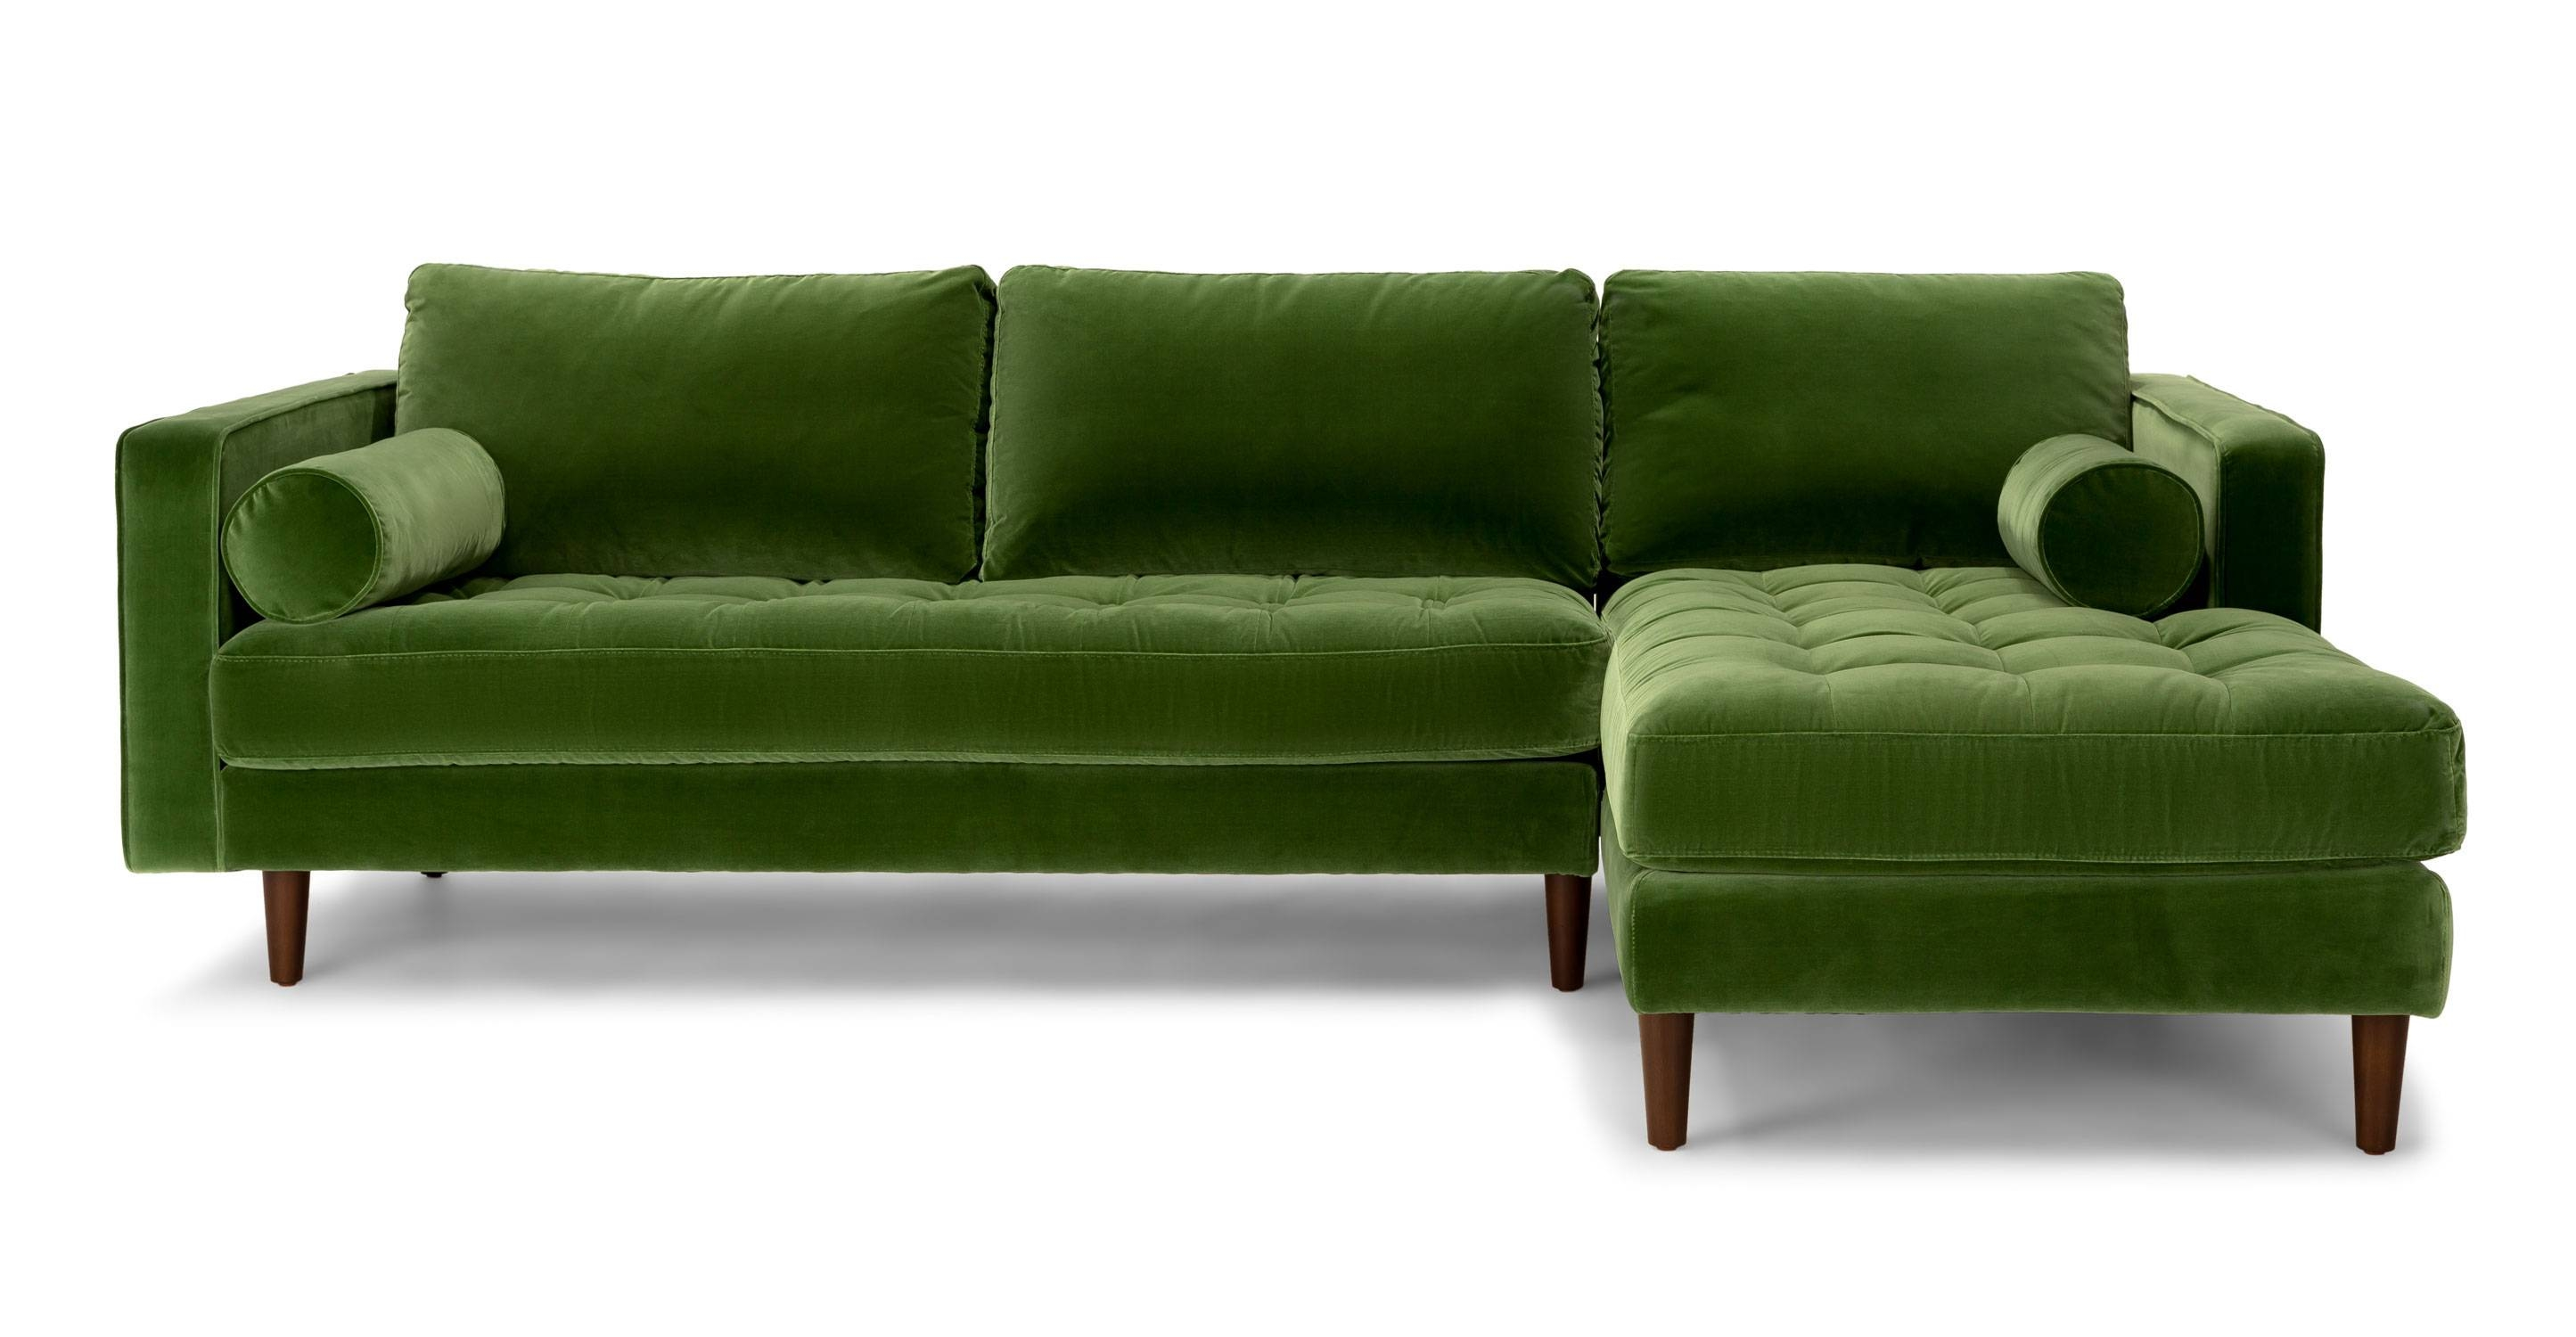 Green Velvet Sectional Sofa | Tehranmix Decoration inside Modern Sofas Sectionals (Image 11 of 30)